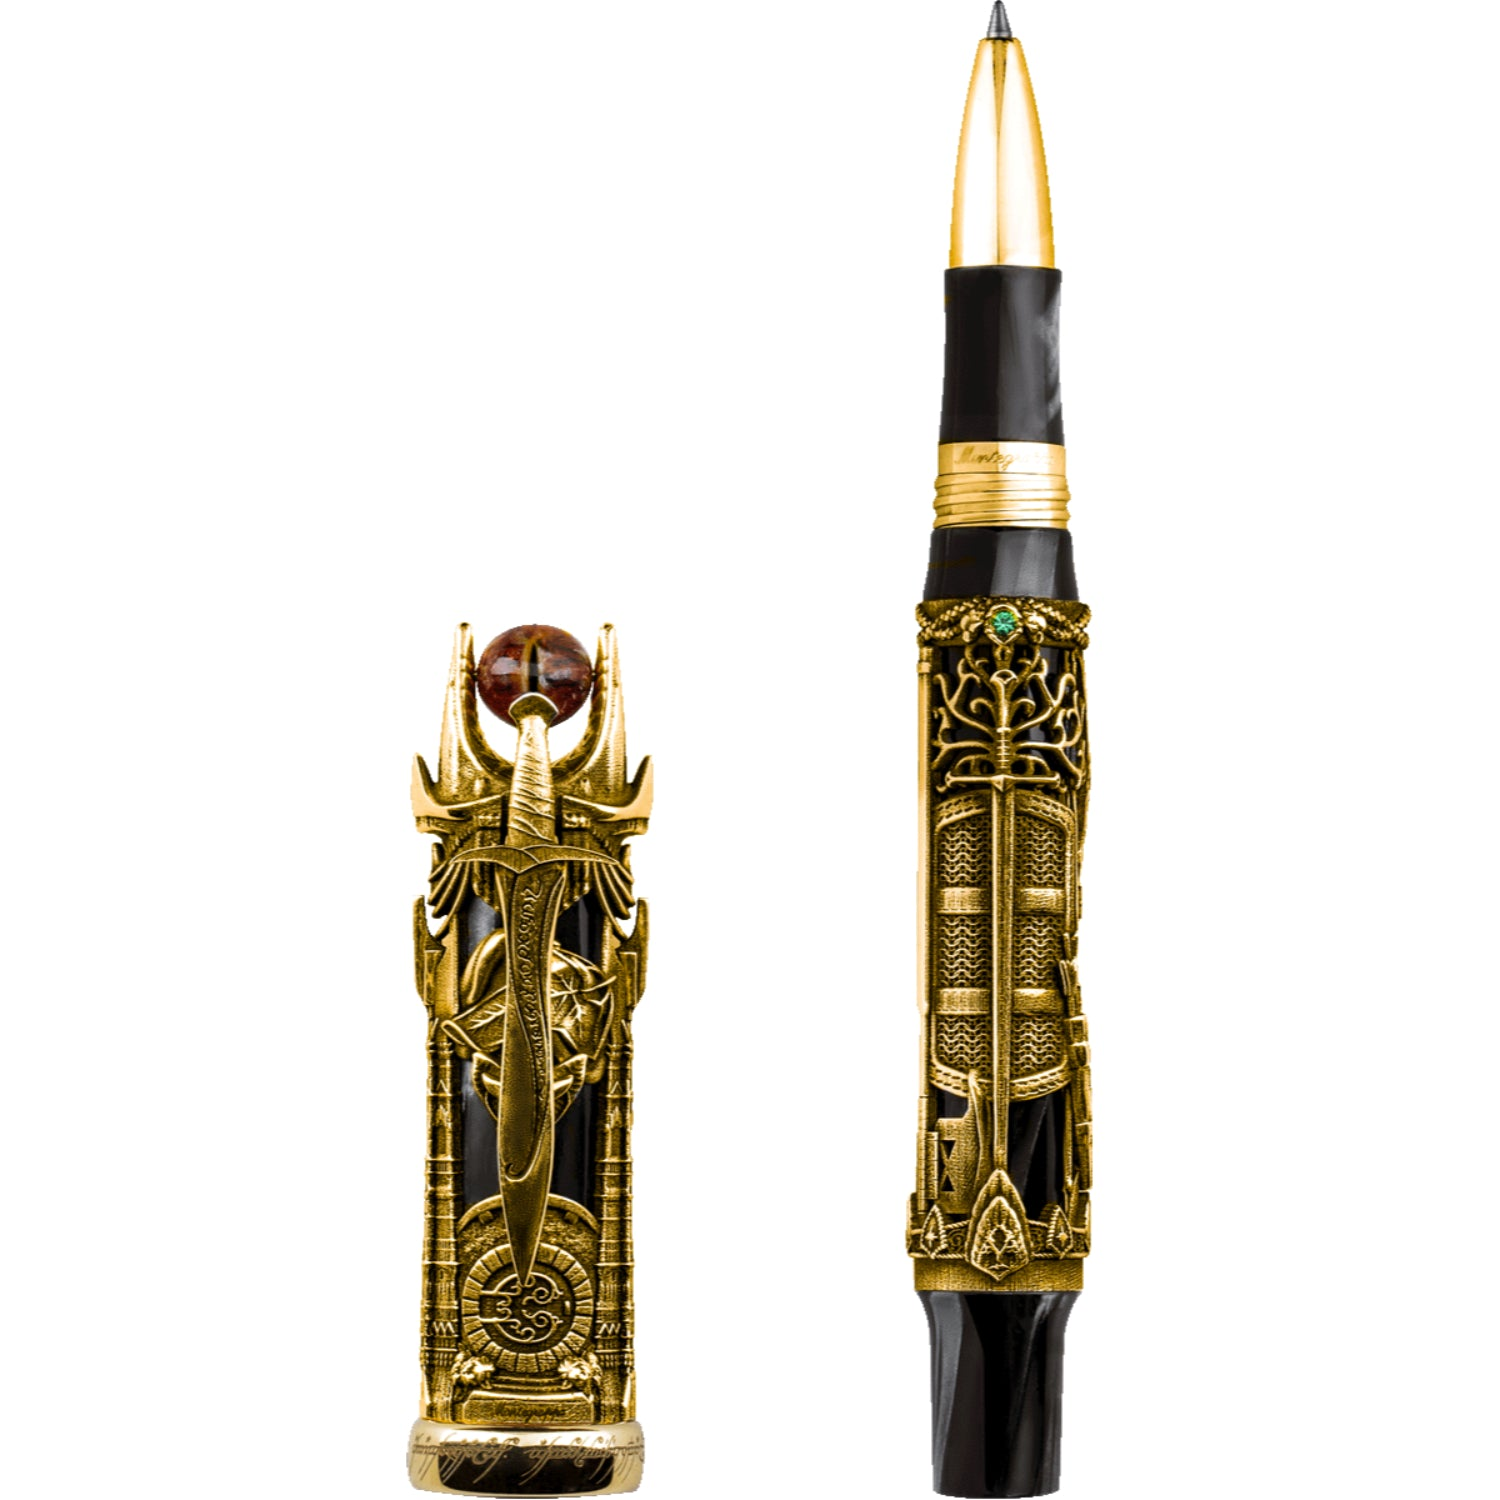 The Lord Of The Rings L.E., Rollerball Pen, 18K Gold